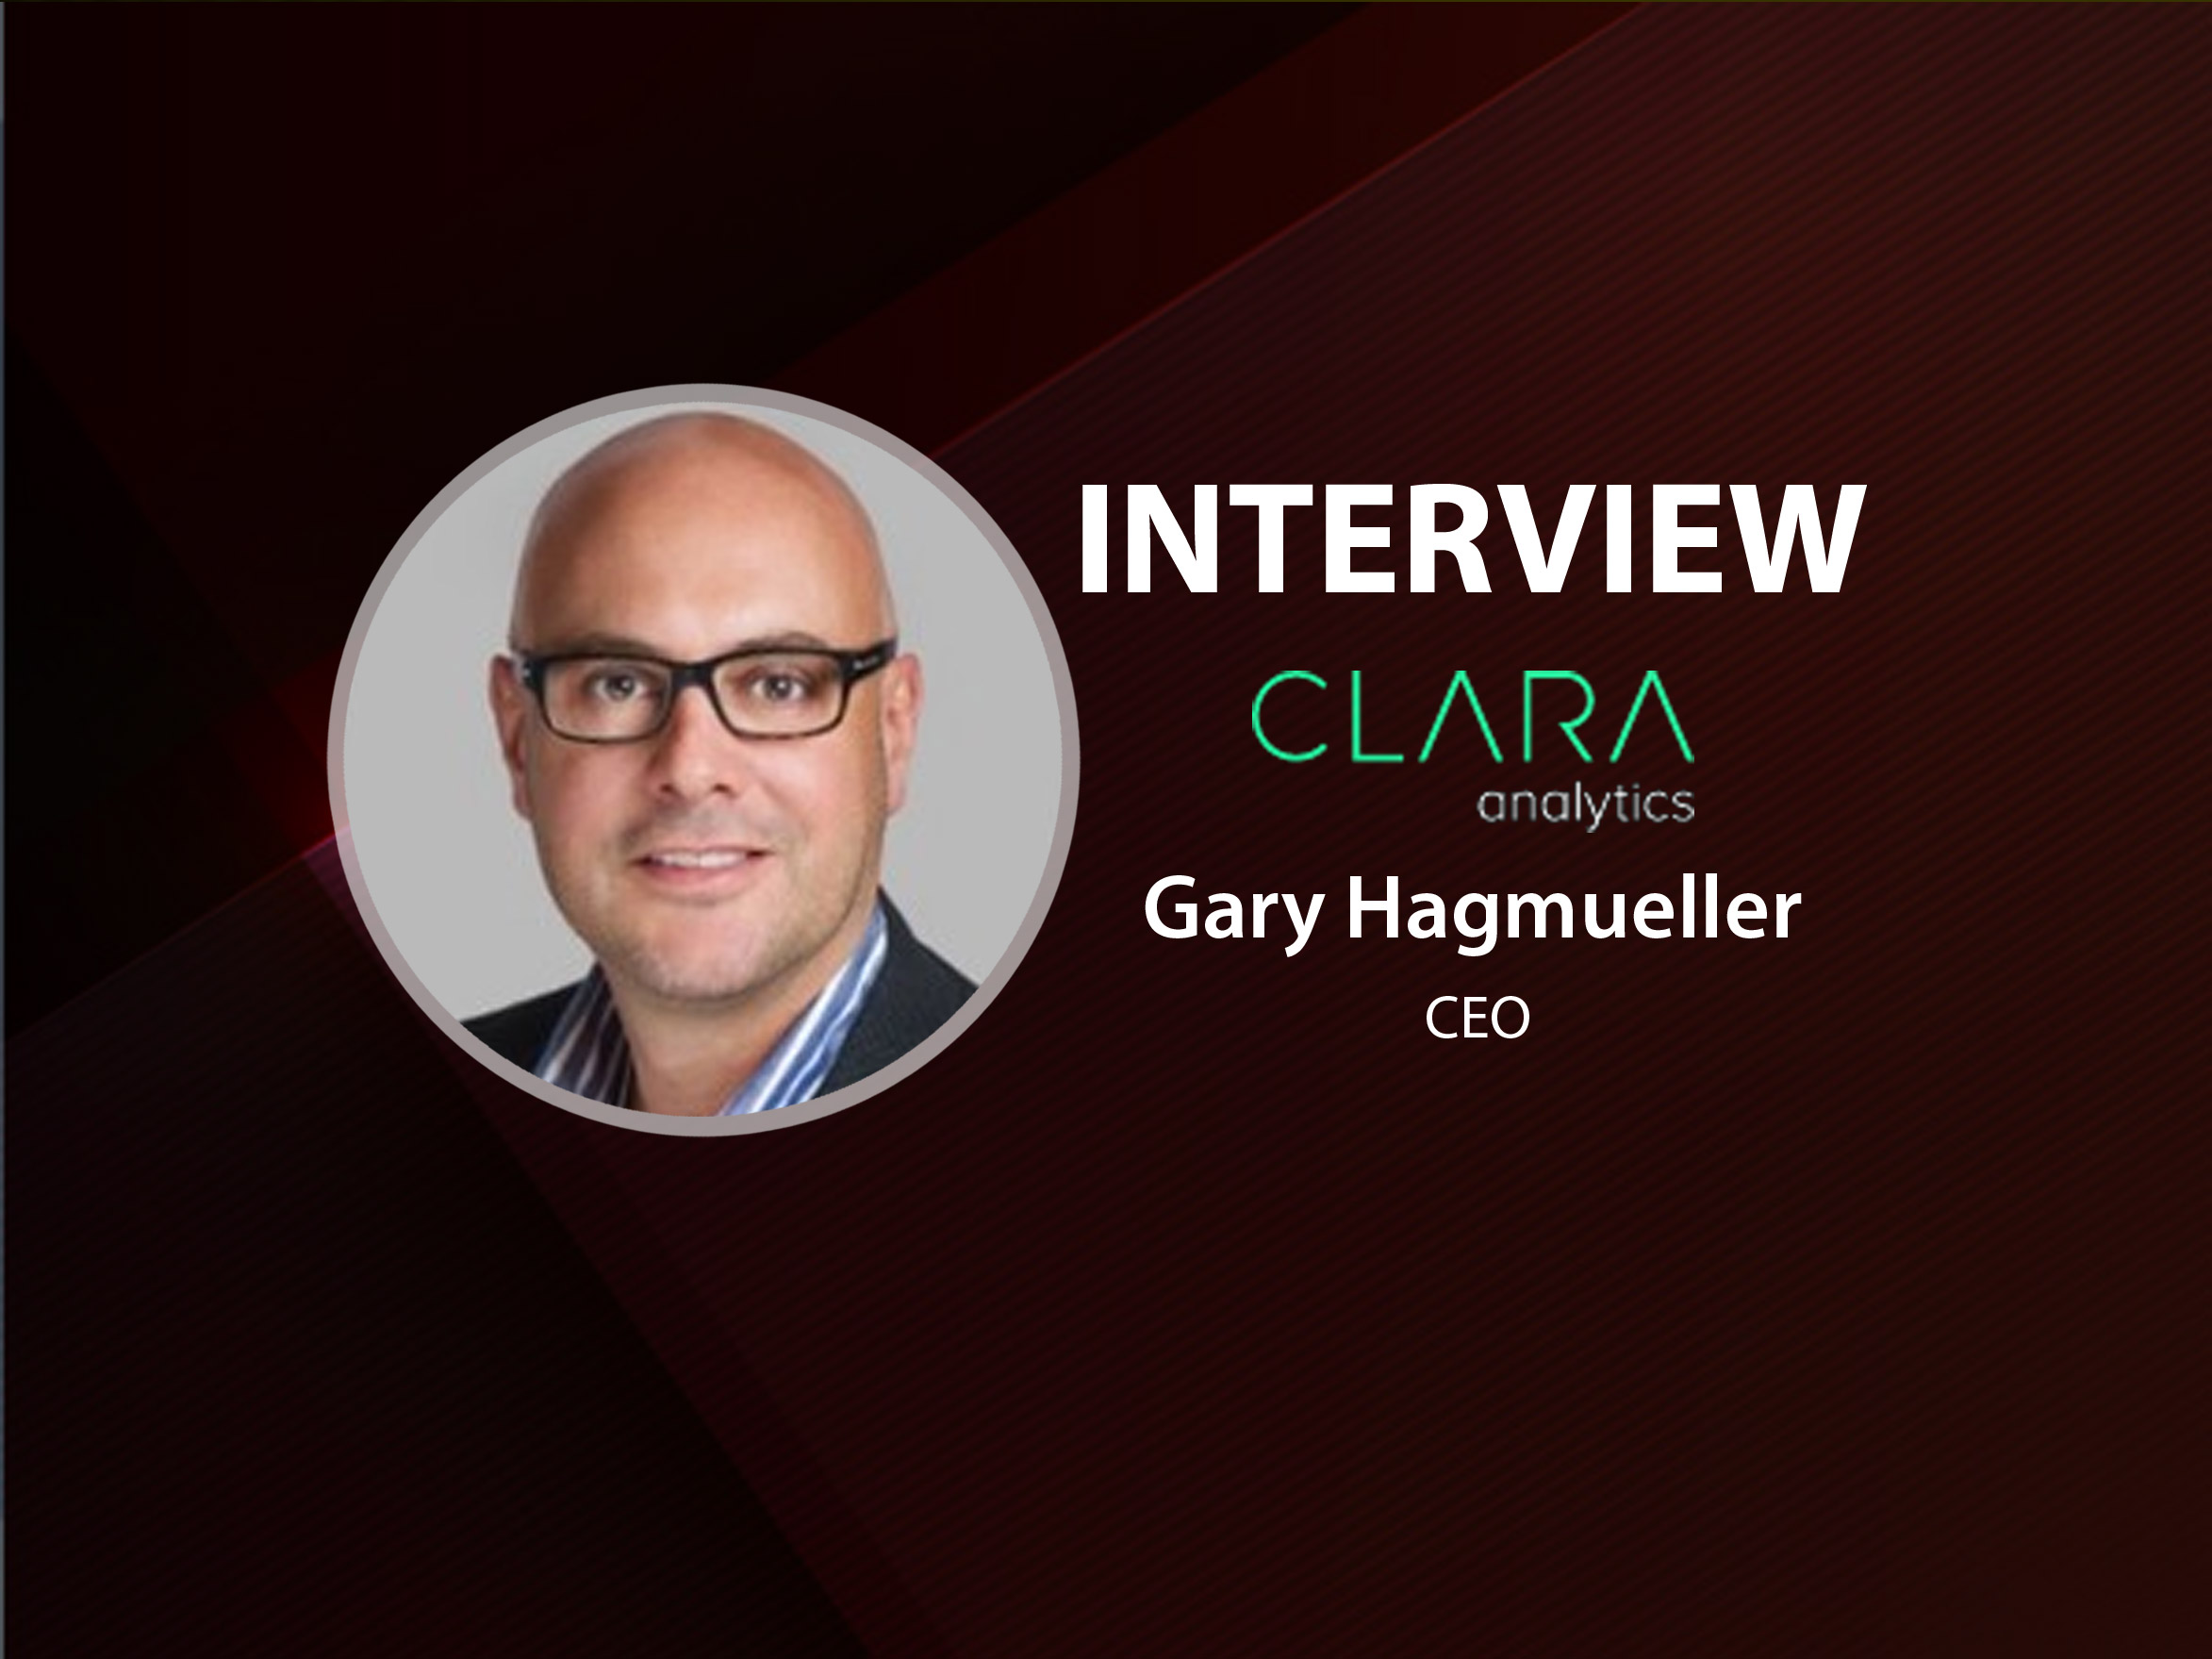 Global FinTech Series Interview with Gary Hagmueller, Chief Executive Officer at CLARA analytics